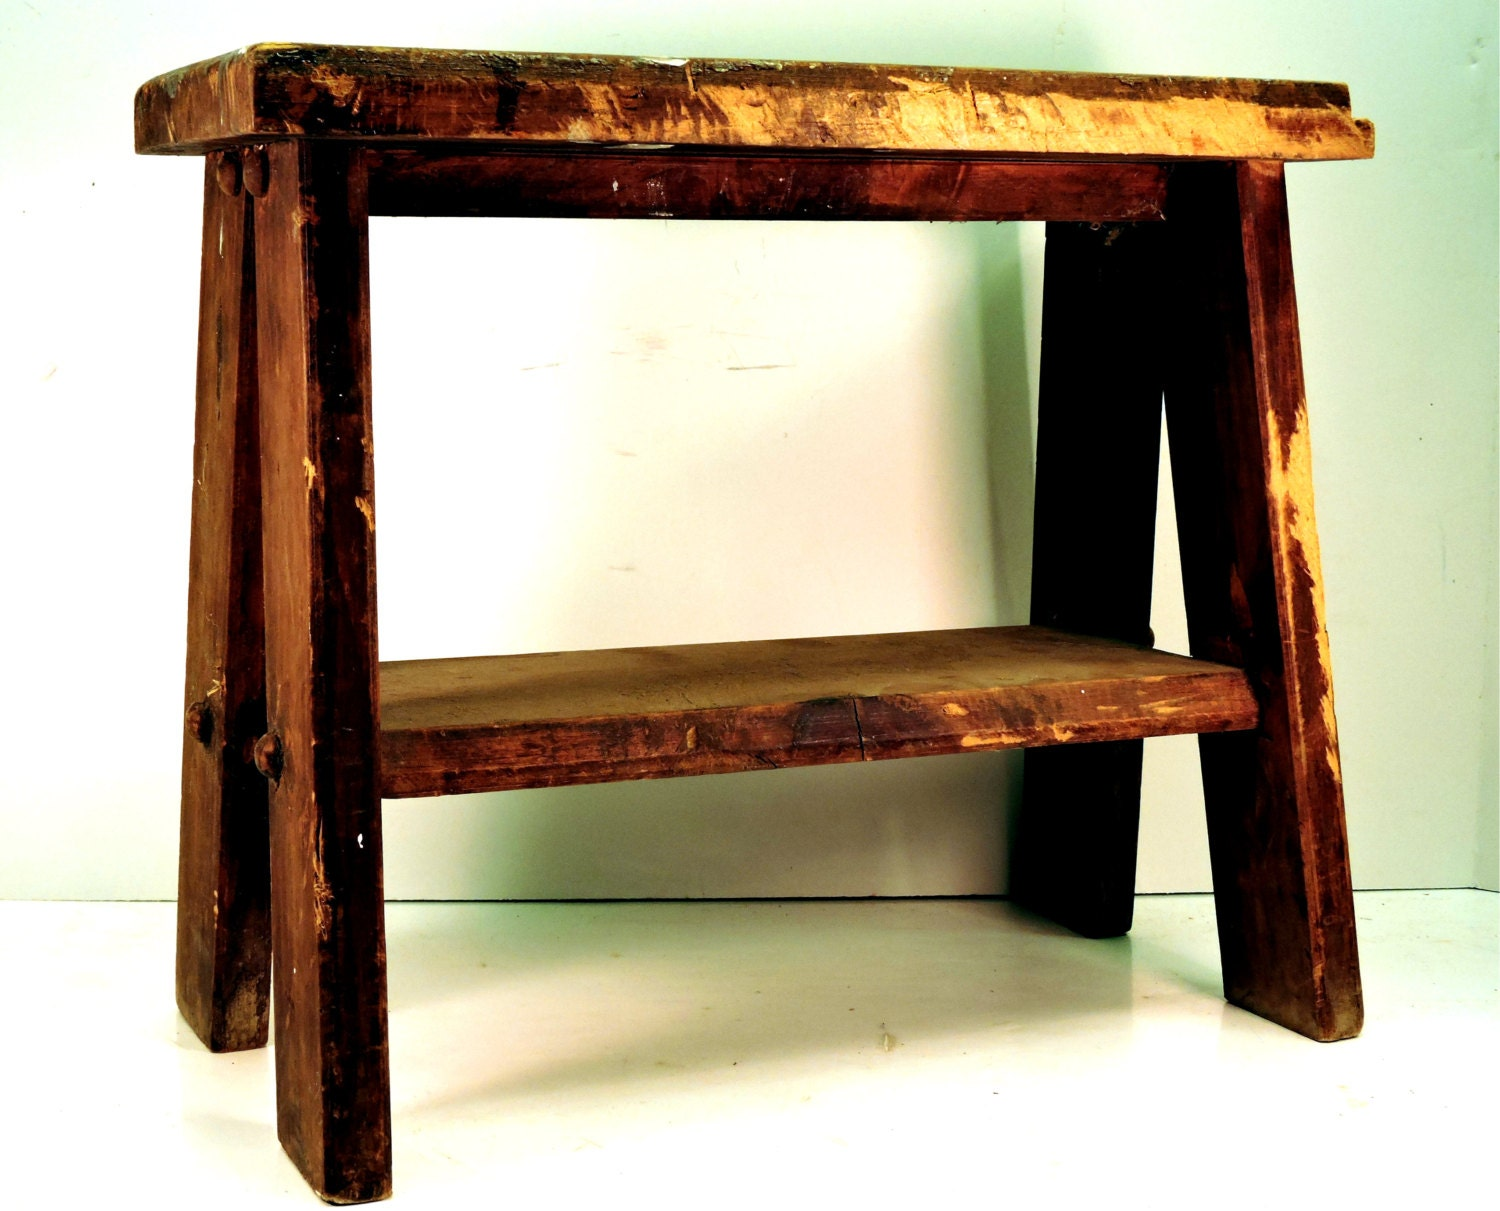 Wood Stool Vintage Step Stool Wooden Bucket Bench By